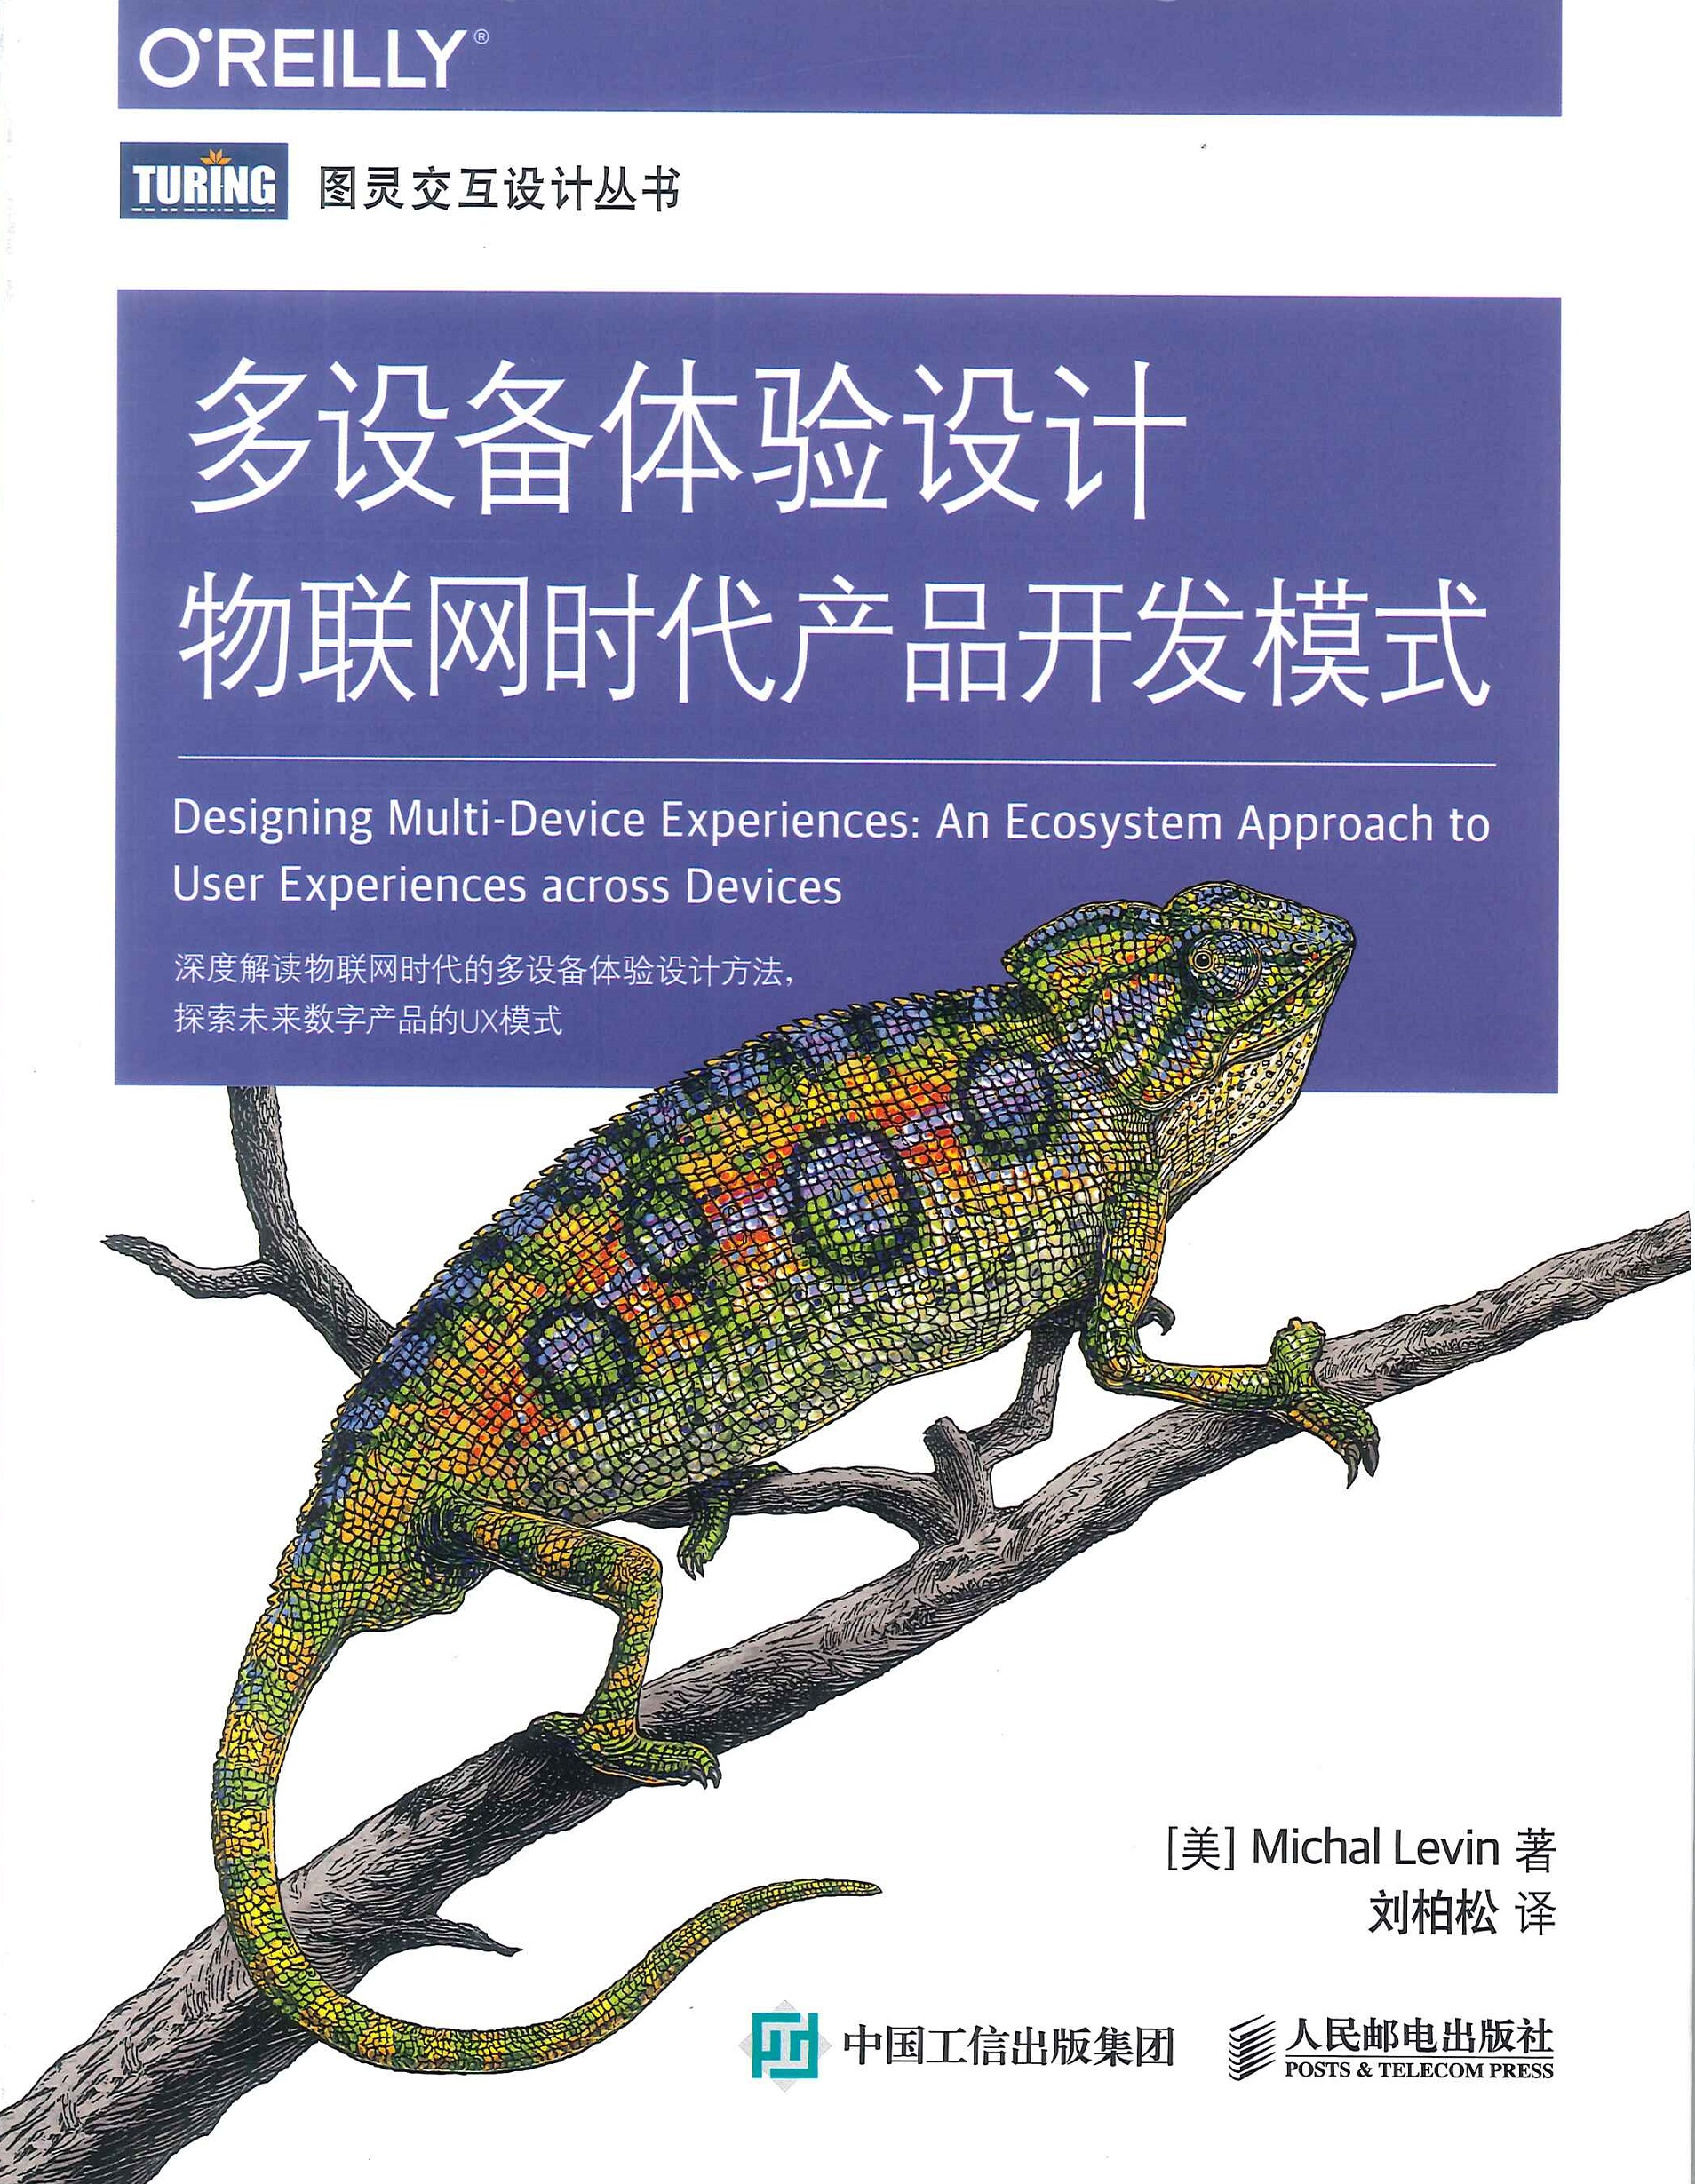 多设备体验设计:物联网时代产品开发模式=Designing multi device experiences:an ecosystem approach to creating user experiences across devices